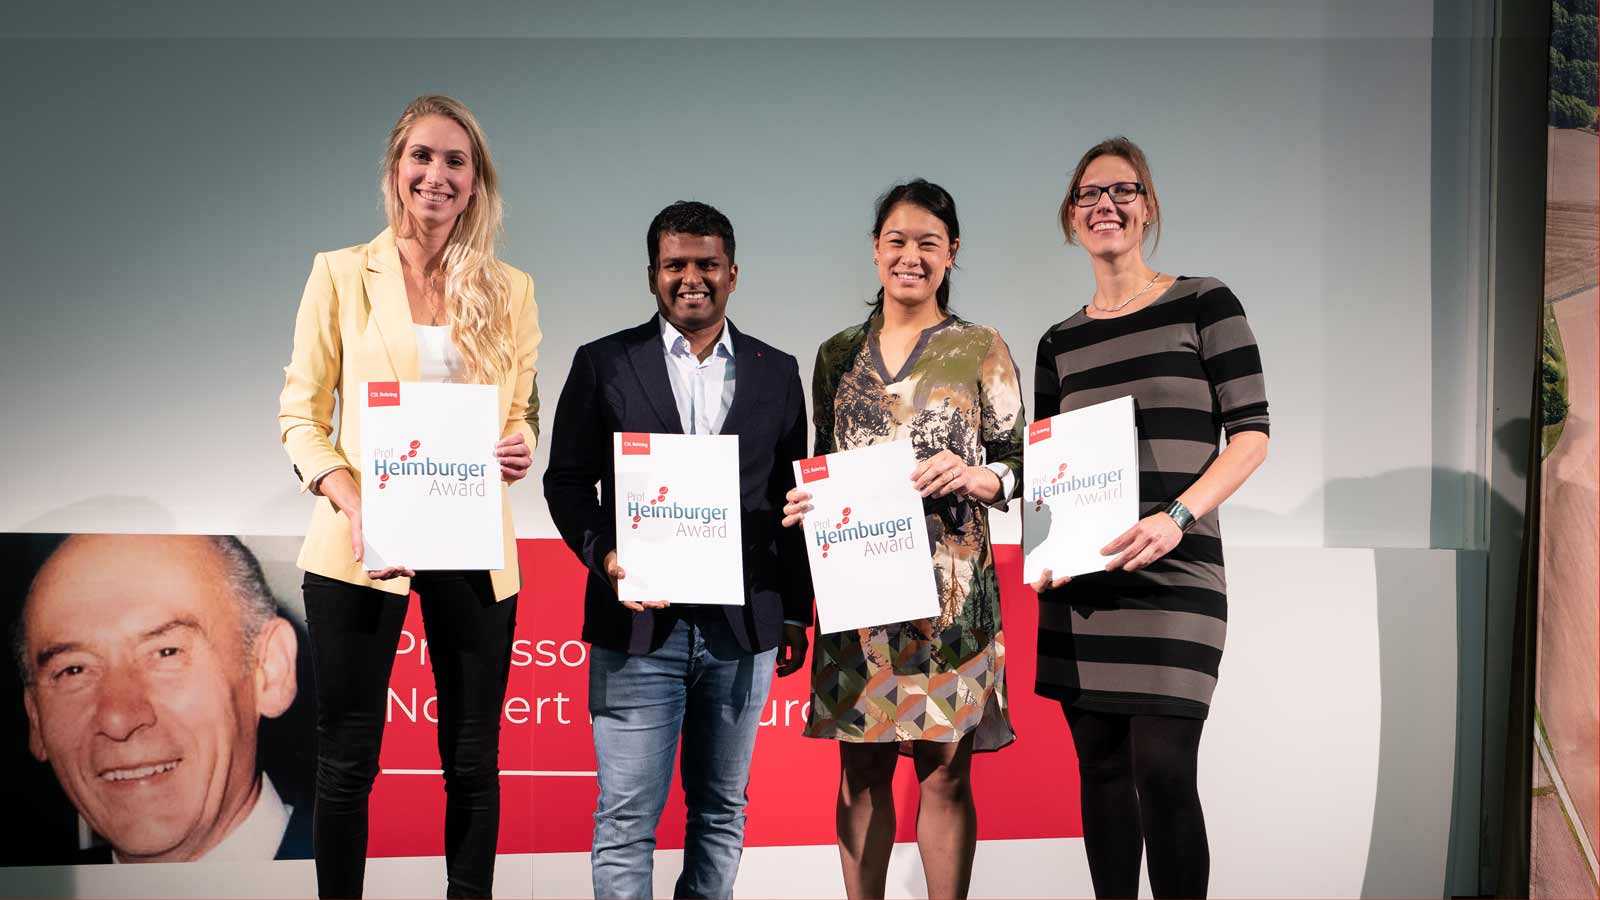 CSL Behring Heimburger Award Winners 2019